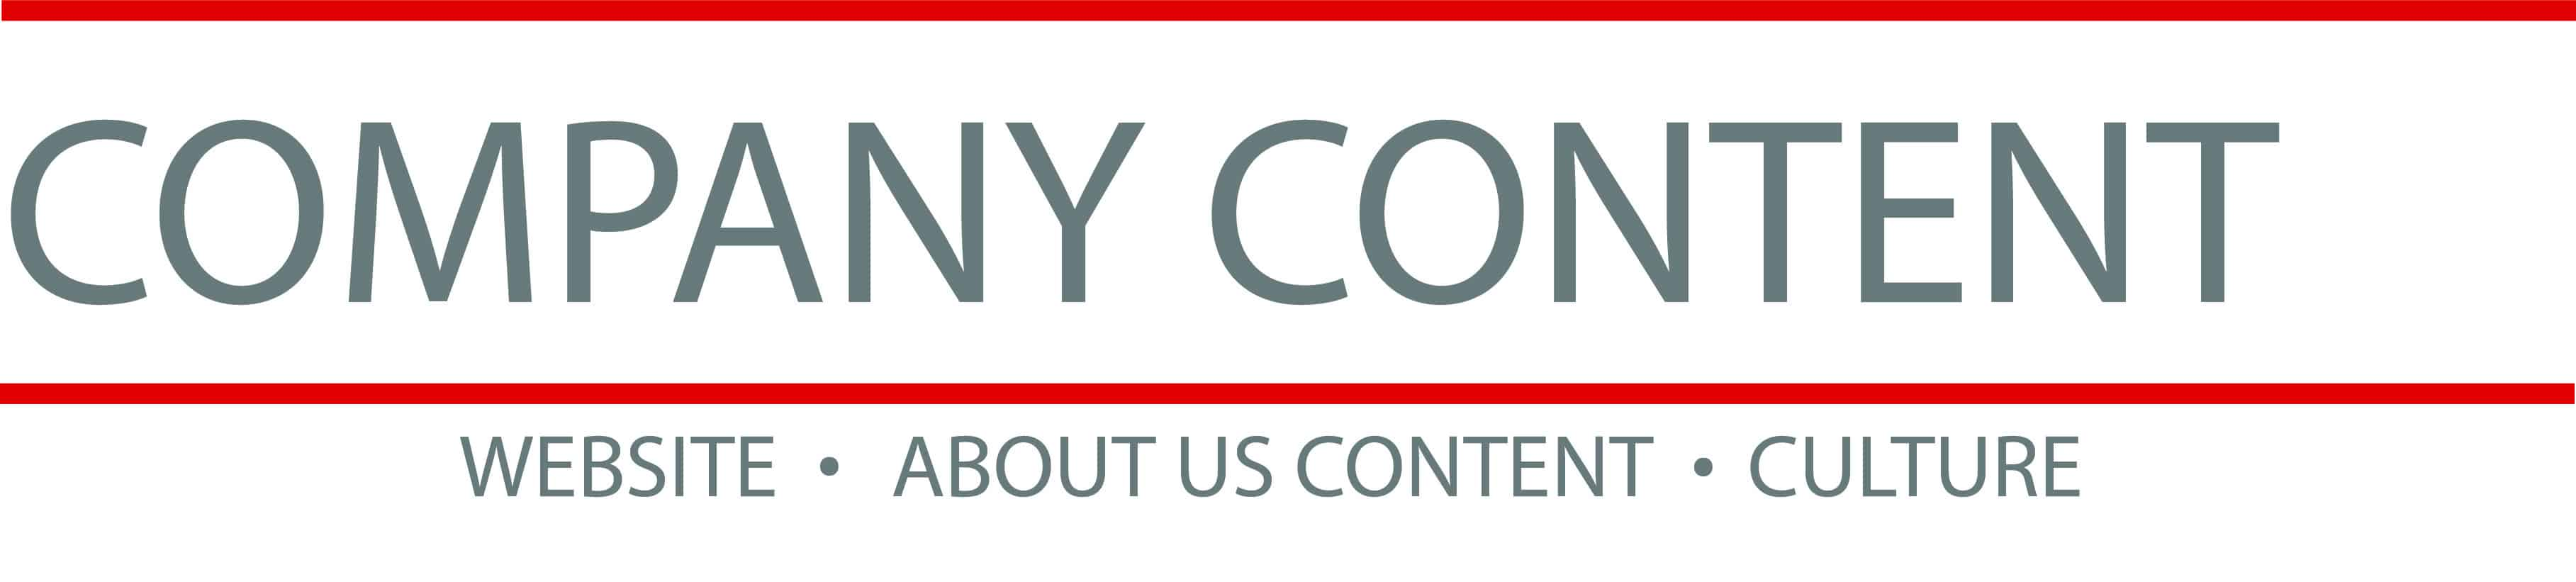 Company Content Title Graphic